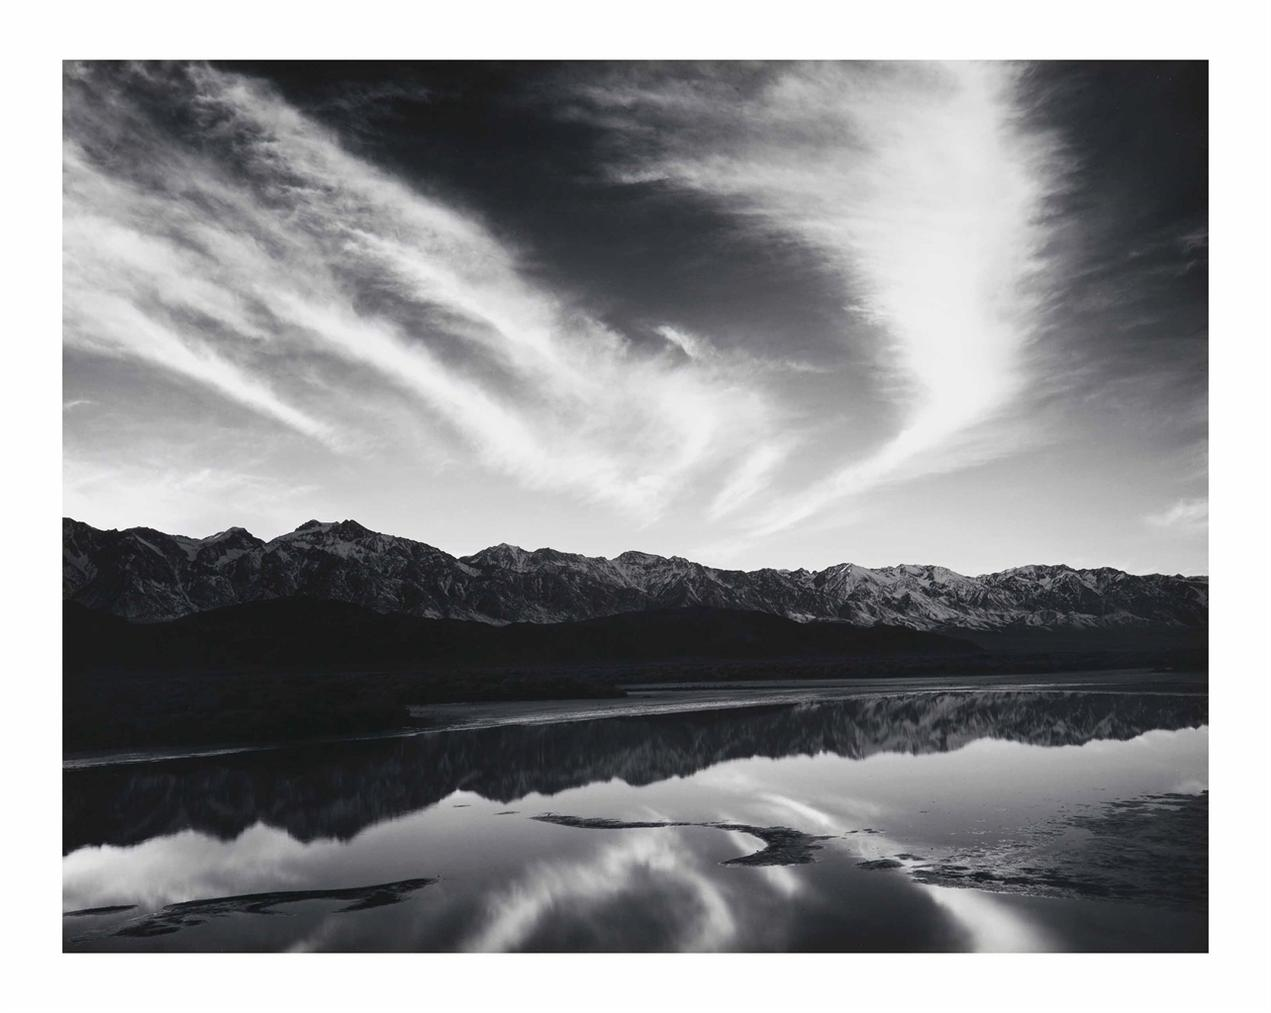 Ansel Adams-Evening Clouds, Sierra Nevada From Owens Valley, California-1962